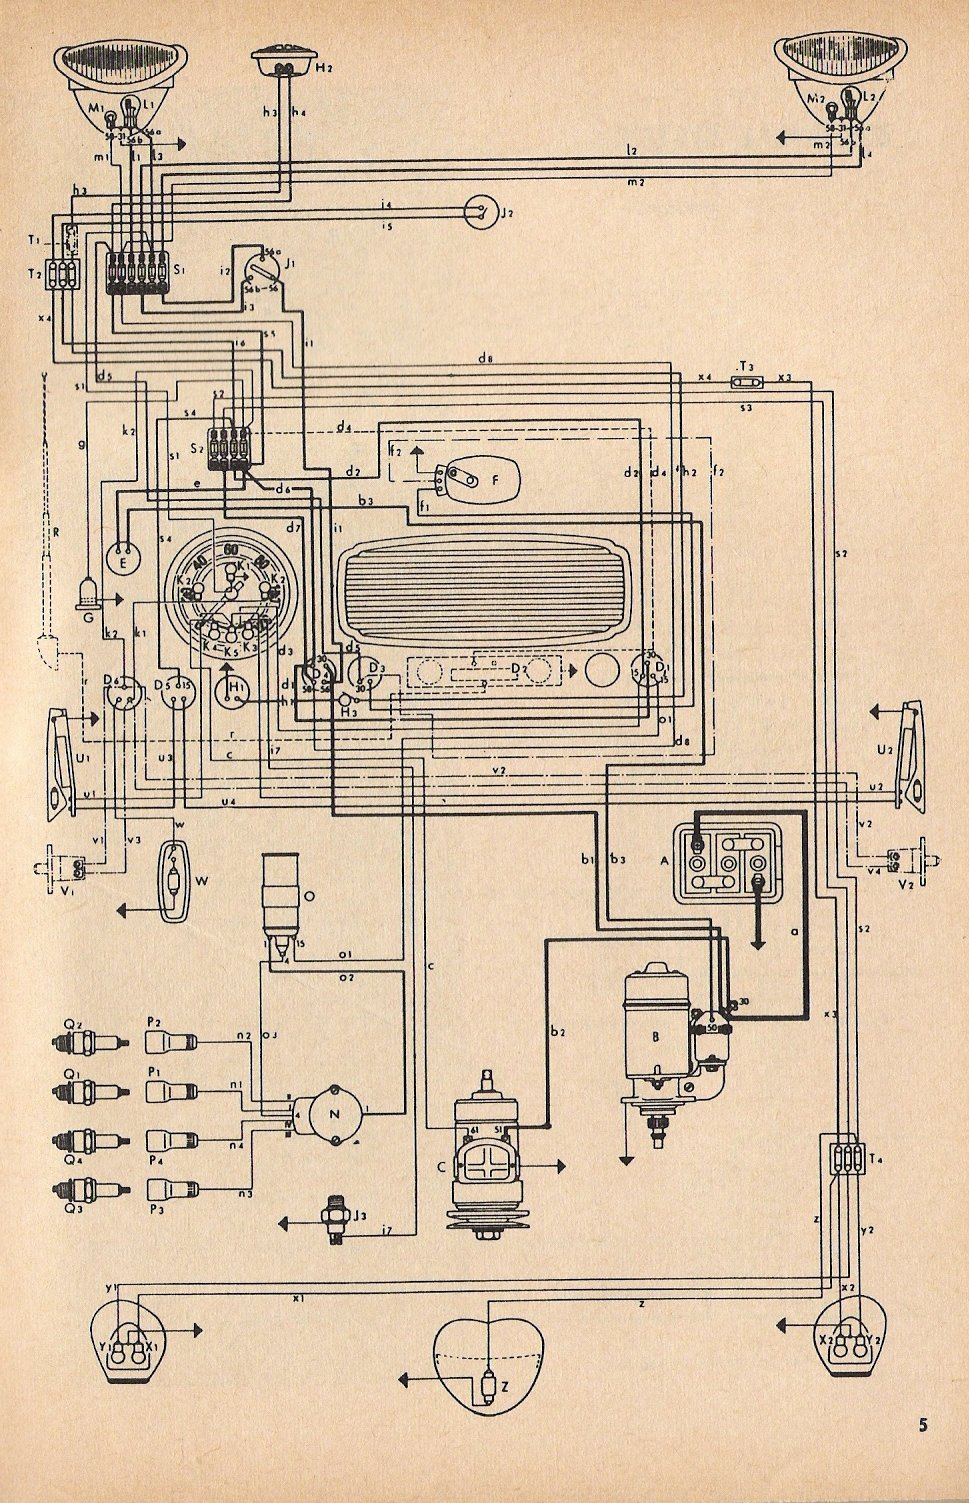 71 Vw Beetle Fuse Block Wiring Diagram Just Another Blog Thesamba Com Type 1 Diagrams Rh 1971 Box